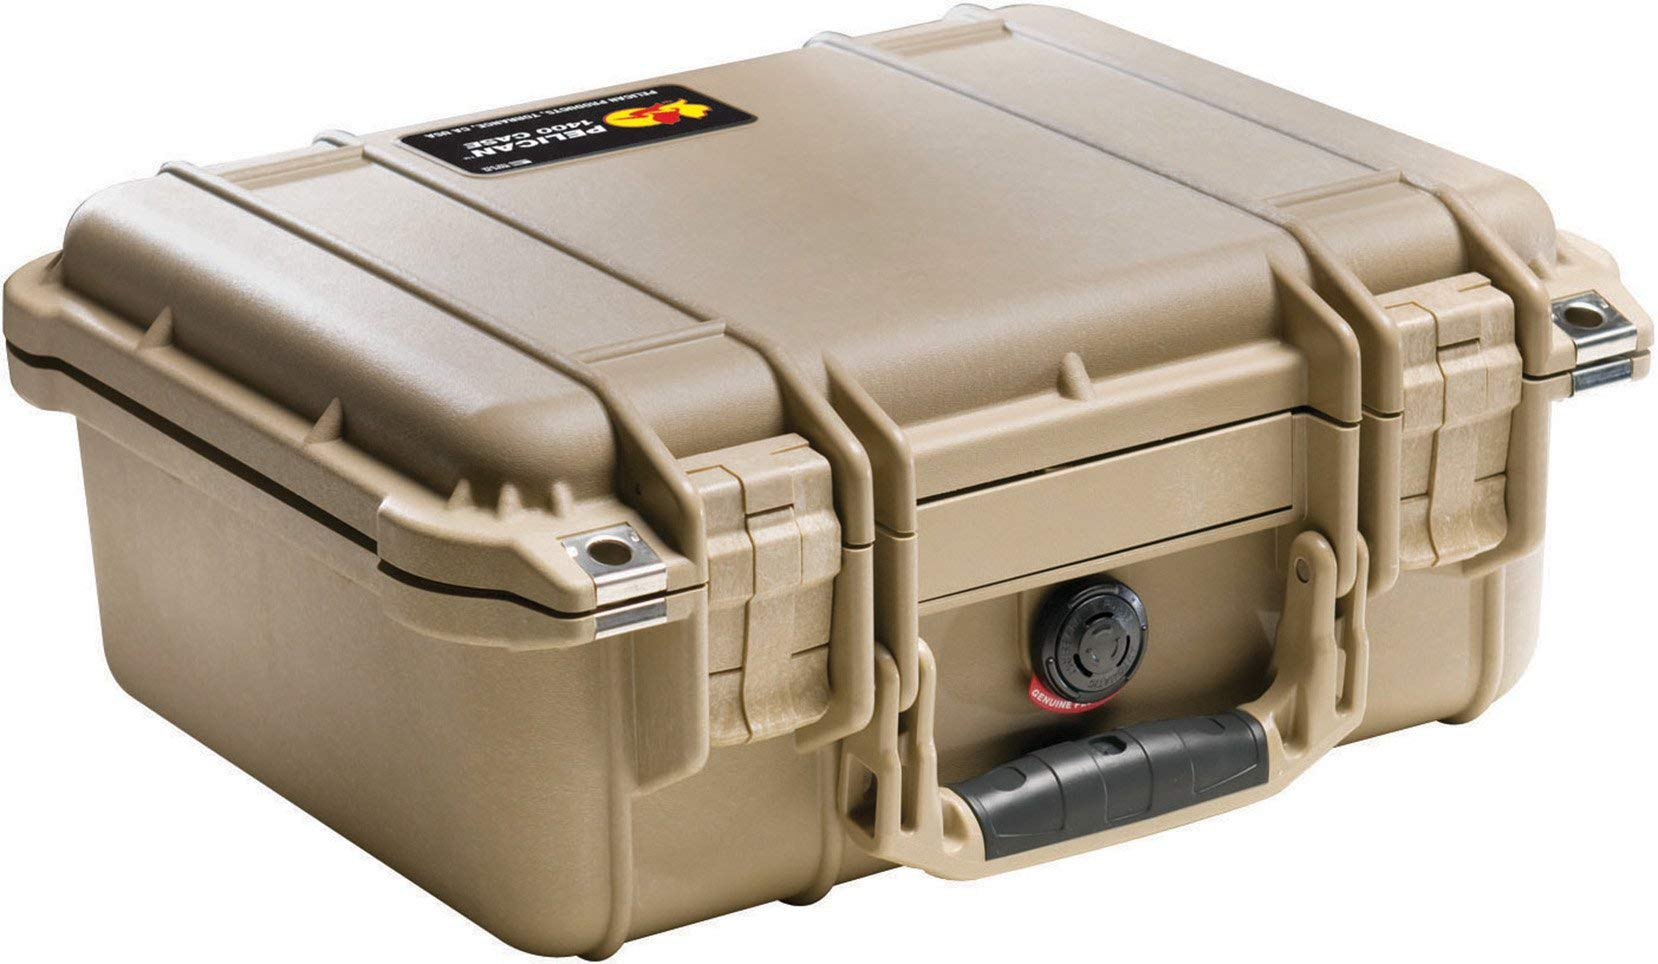 Pelican 1400 Camera Case With Foam (Desert Tan) (Renewed)